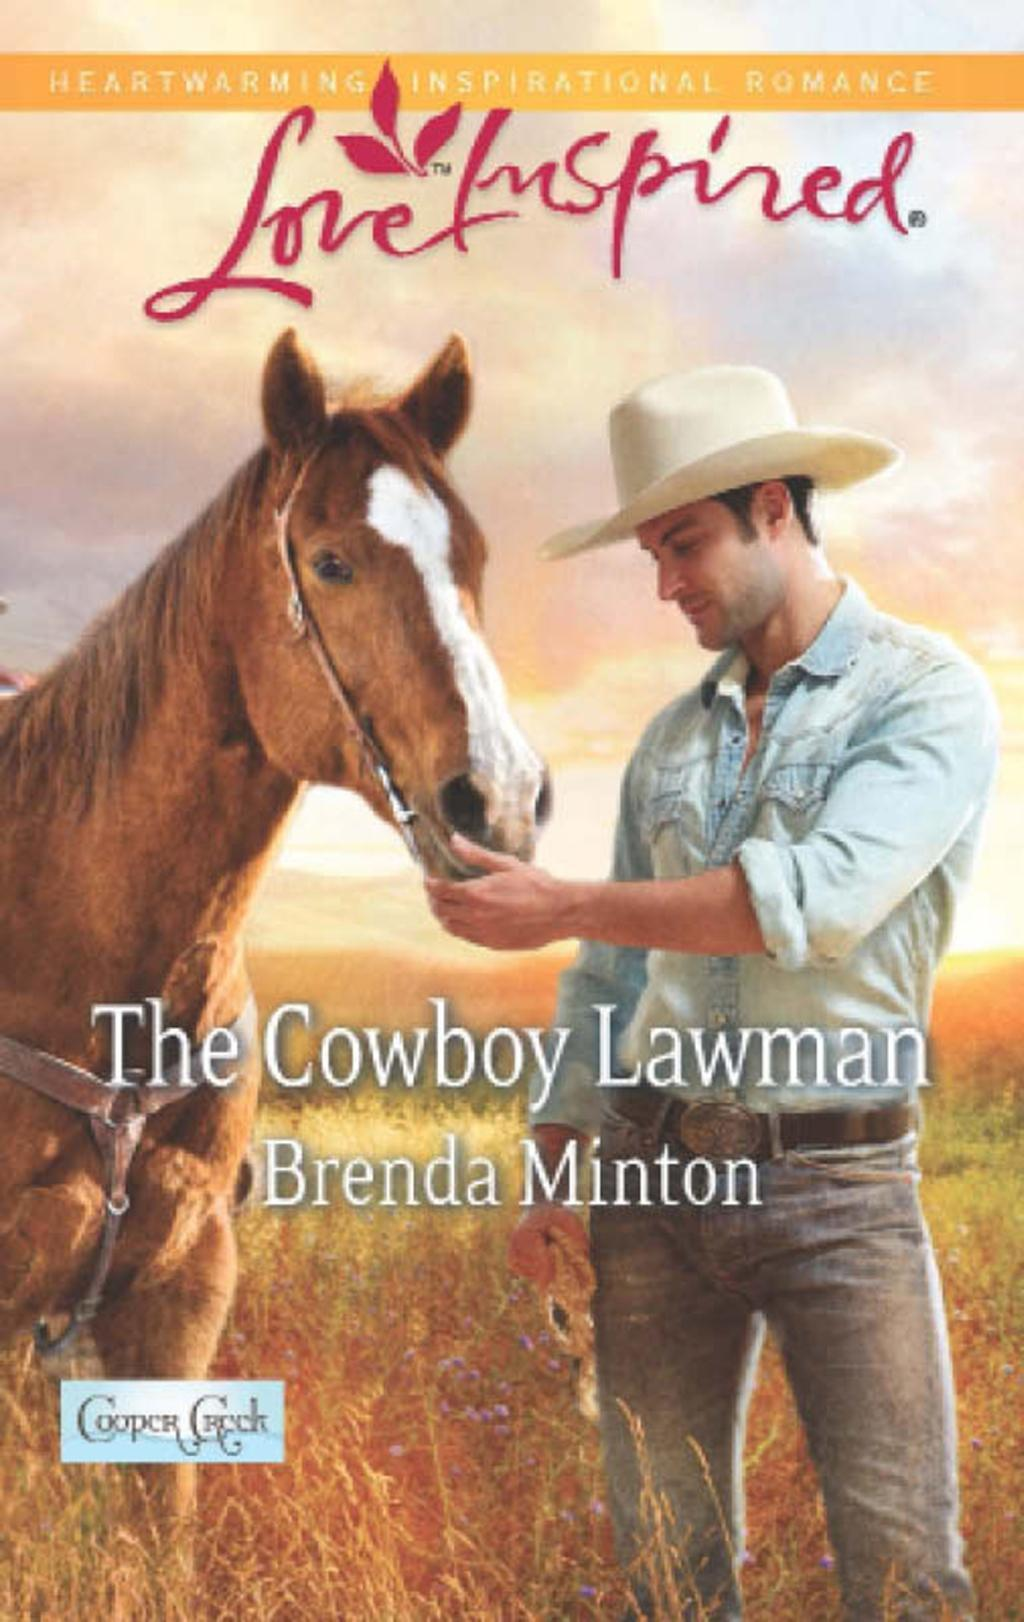 The Cowboy Lawman (Mills & Boon Love Inspired) (Cooper Creek, Book 6)